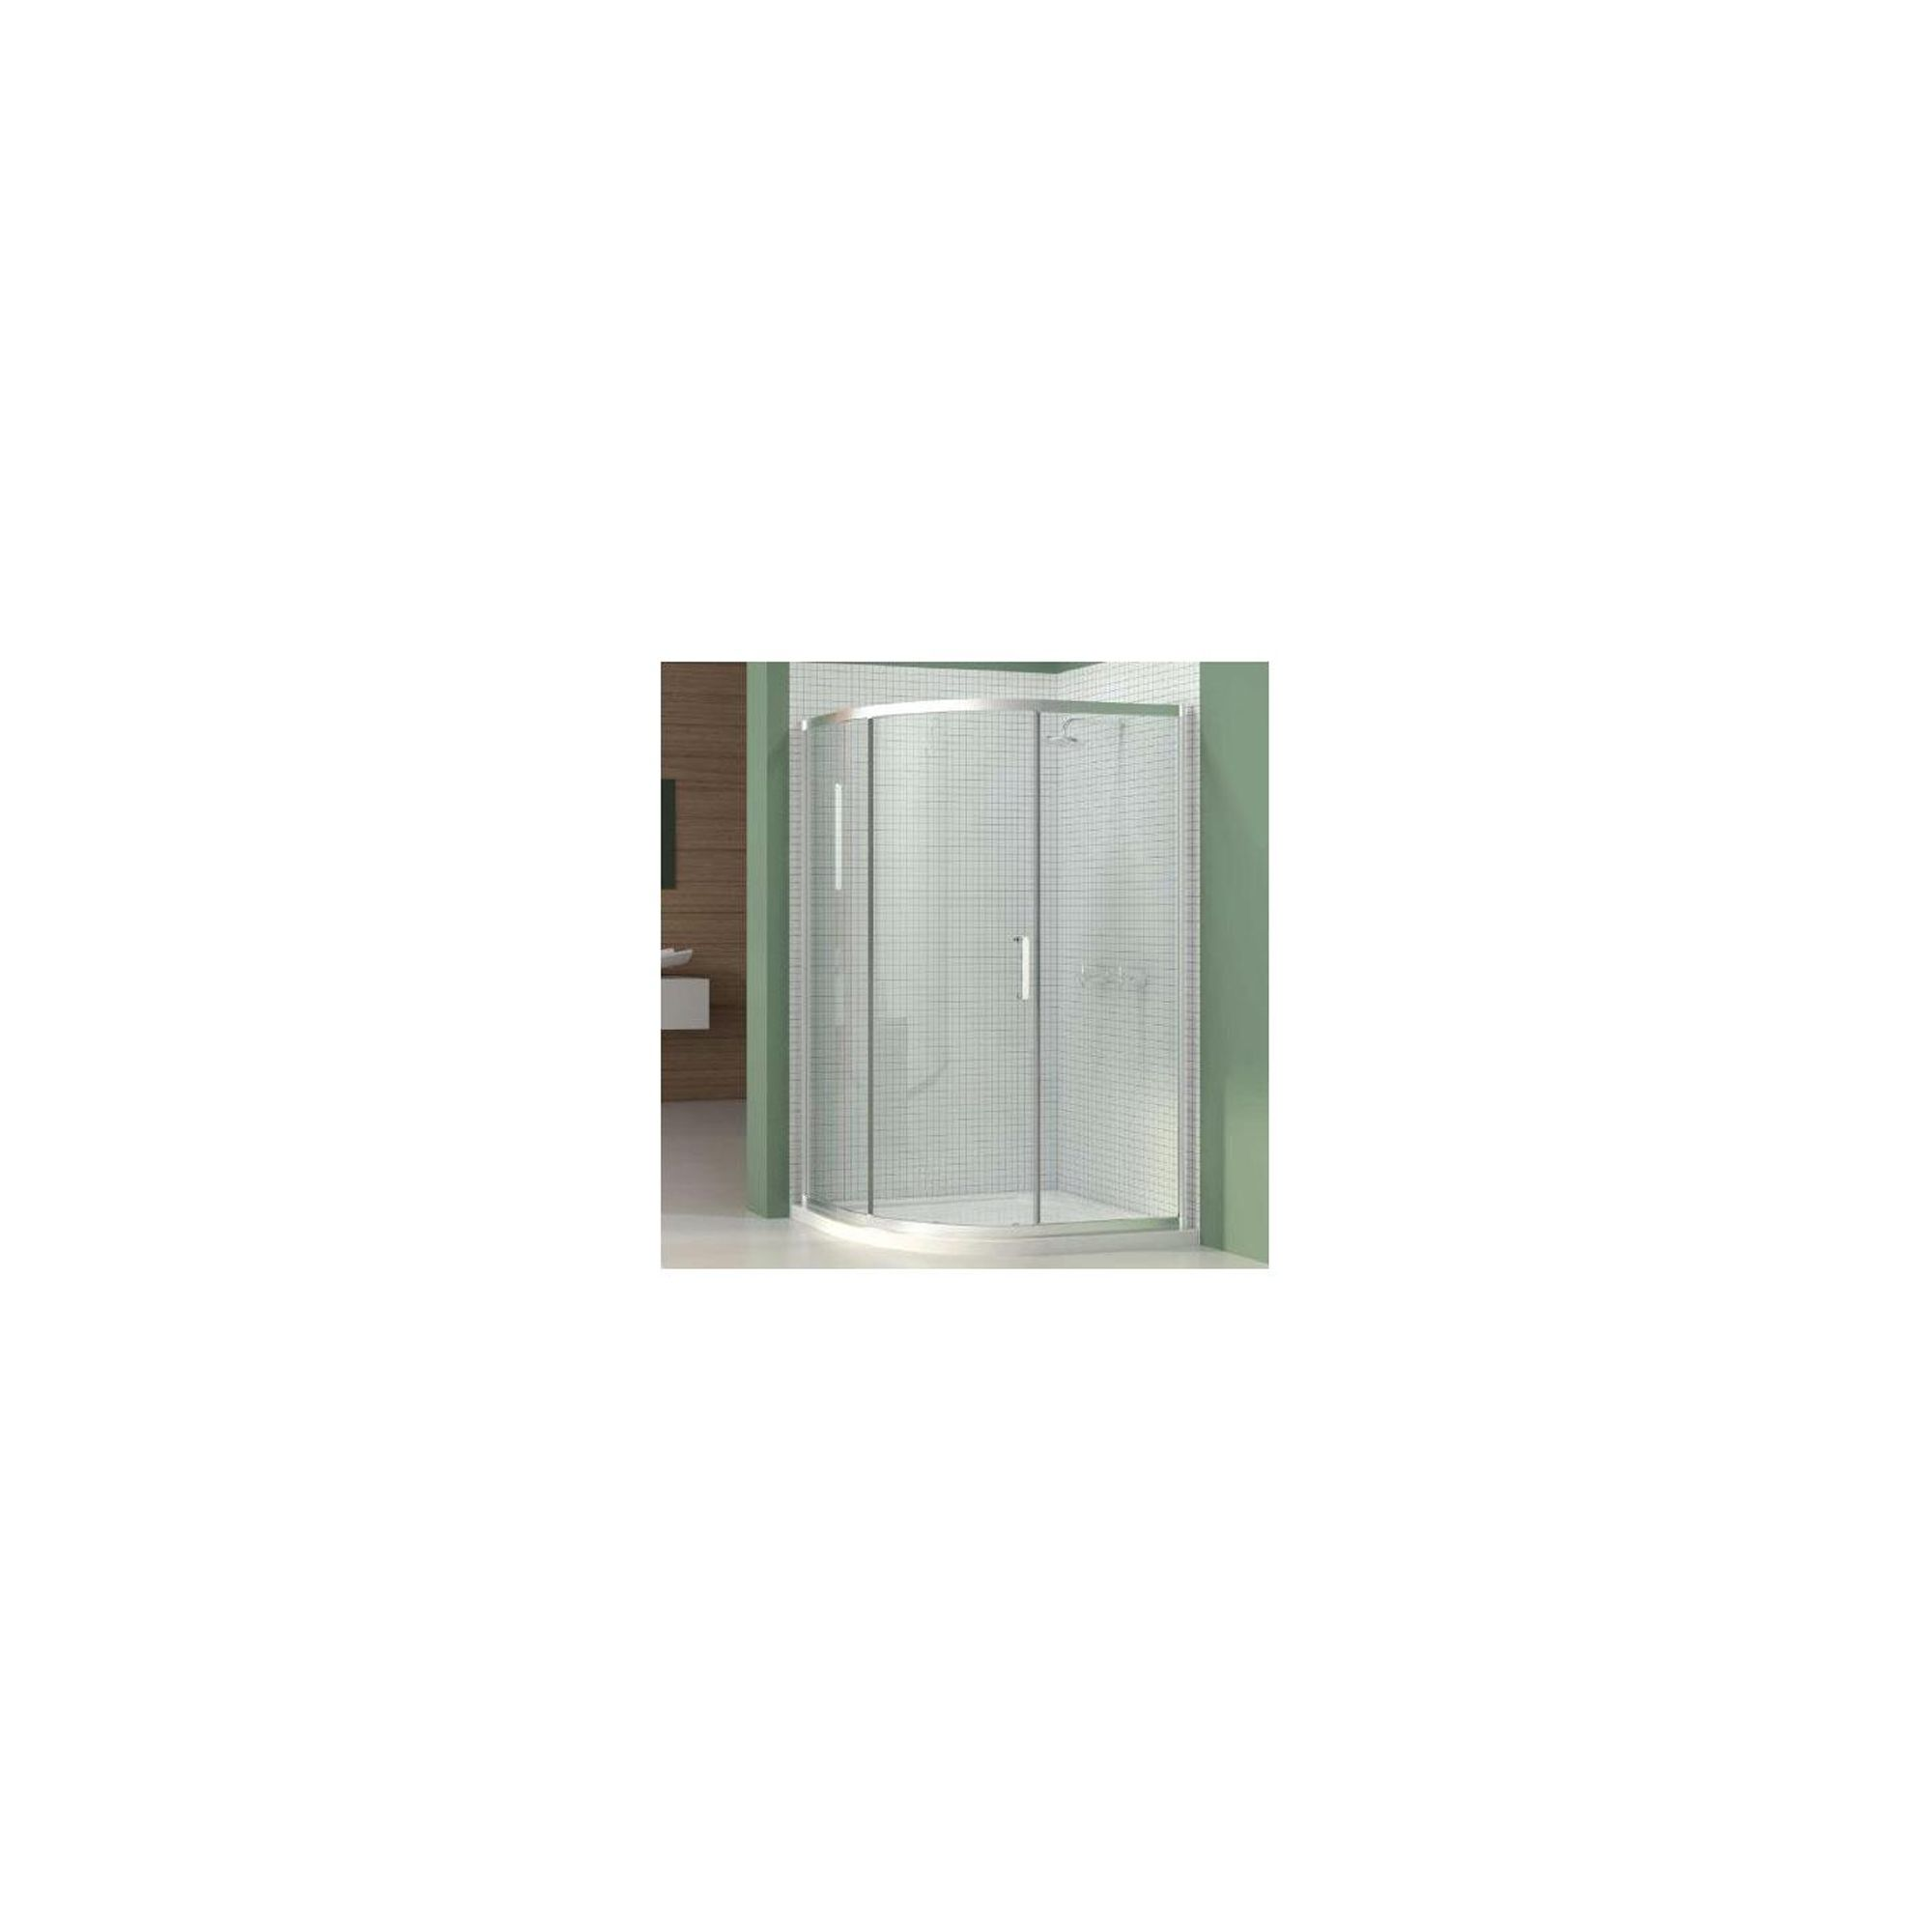 Merlyn Vivid Six Offset Quadrant Shower Door, 1000mm x 800mm, 6mm Glass at Tesco Direct